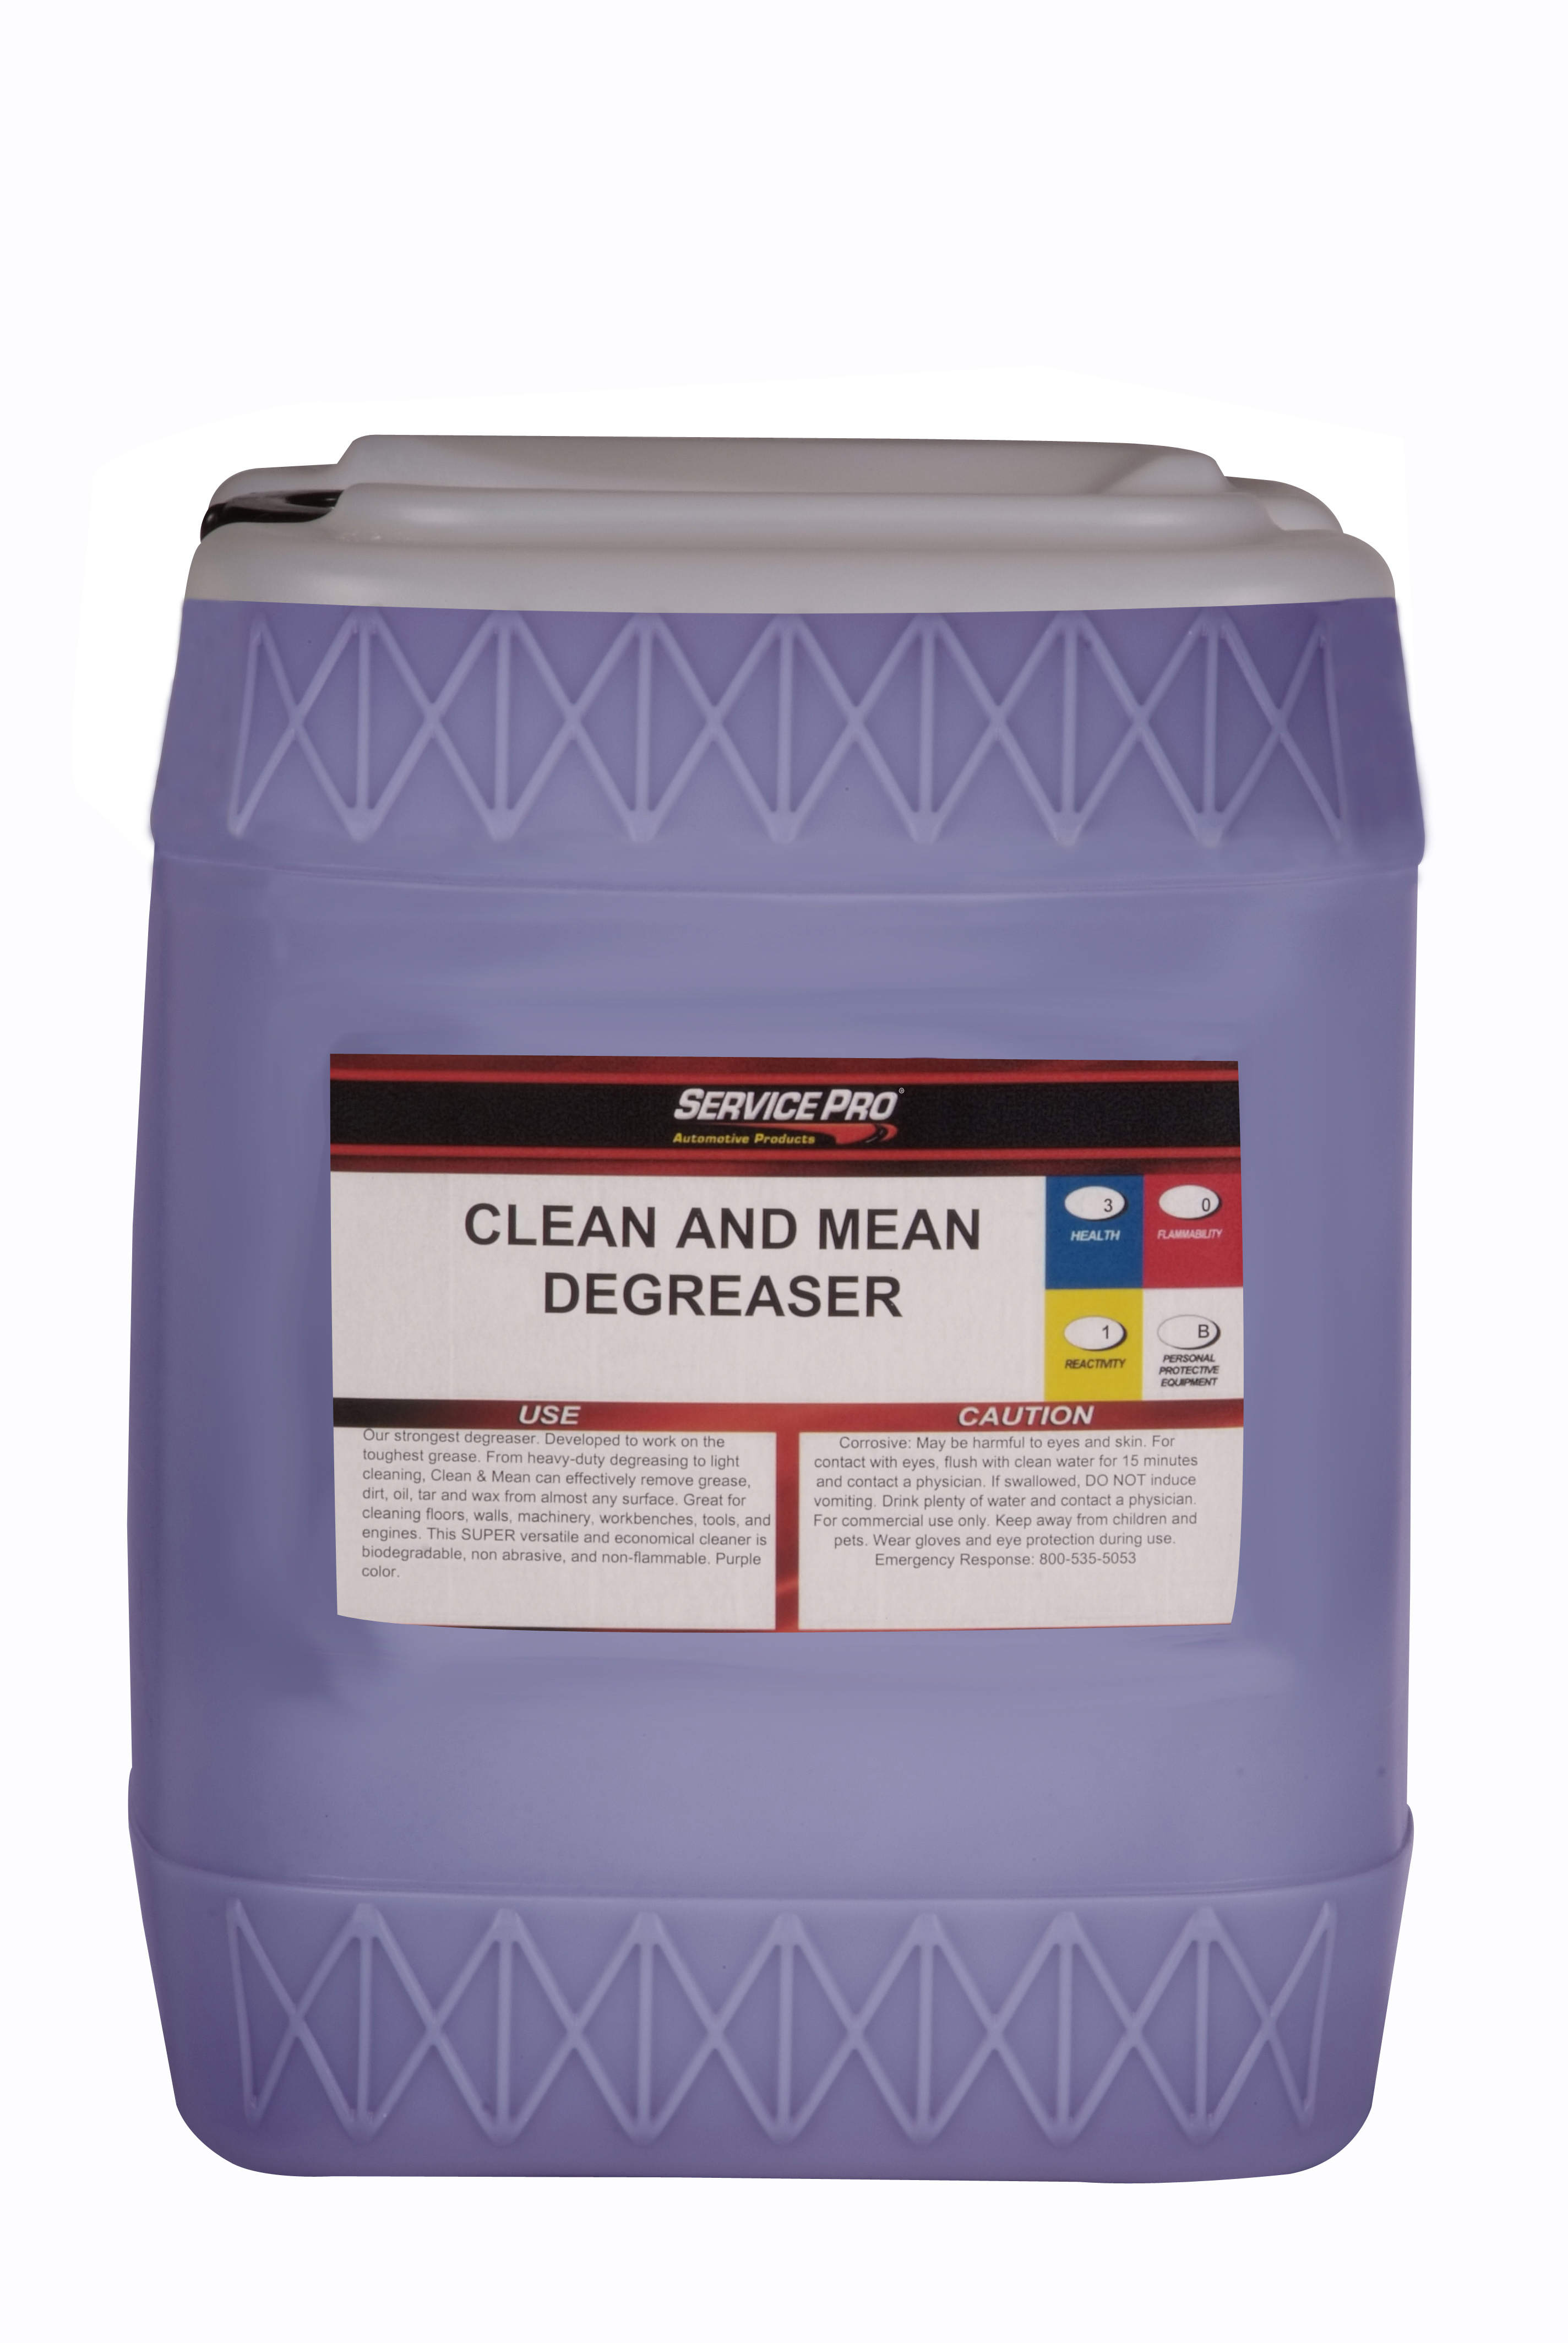 UN1760,CORROSIVE LIQUID,